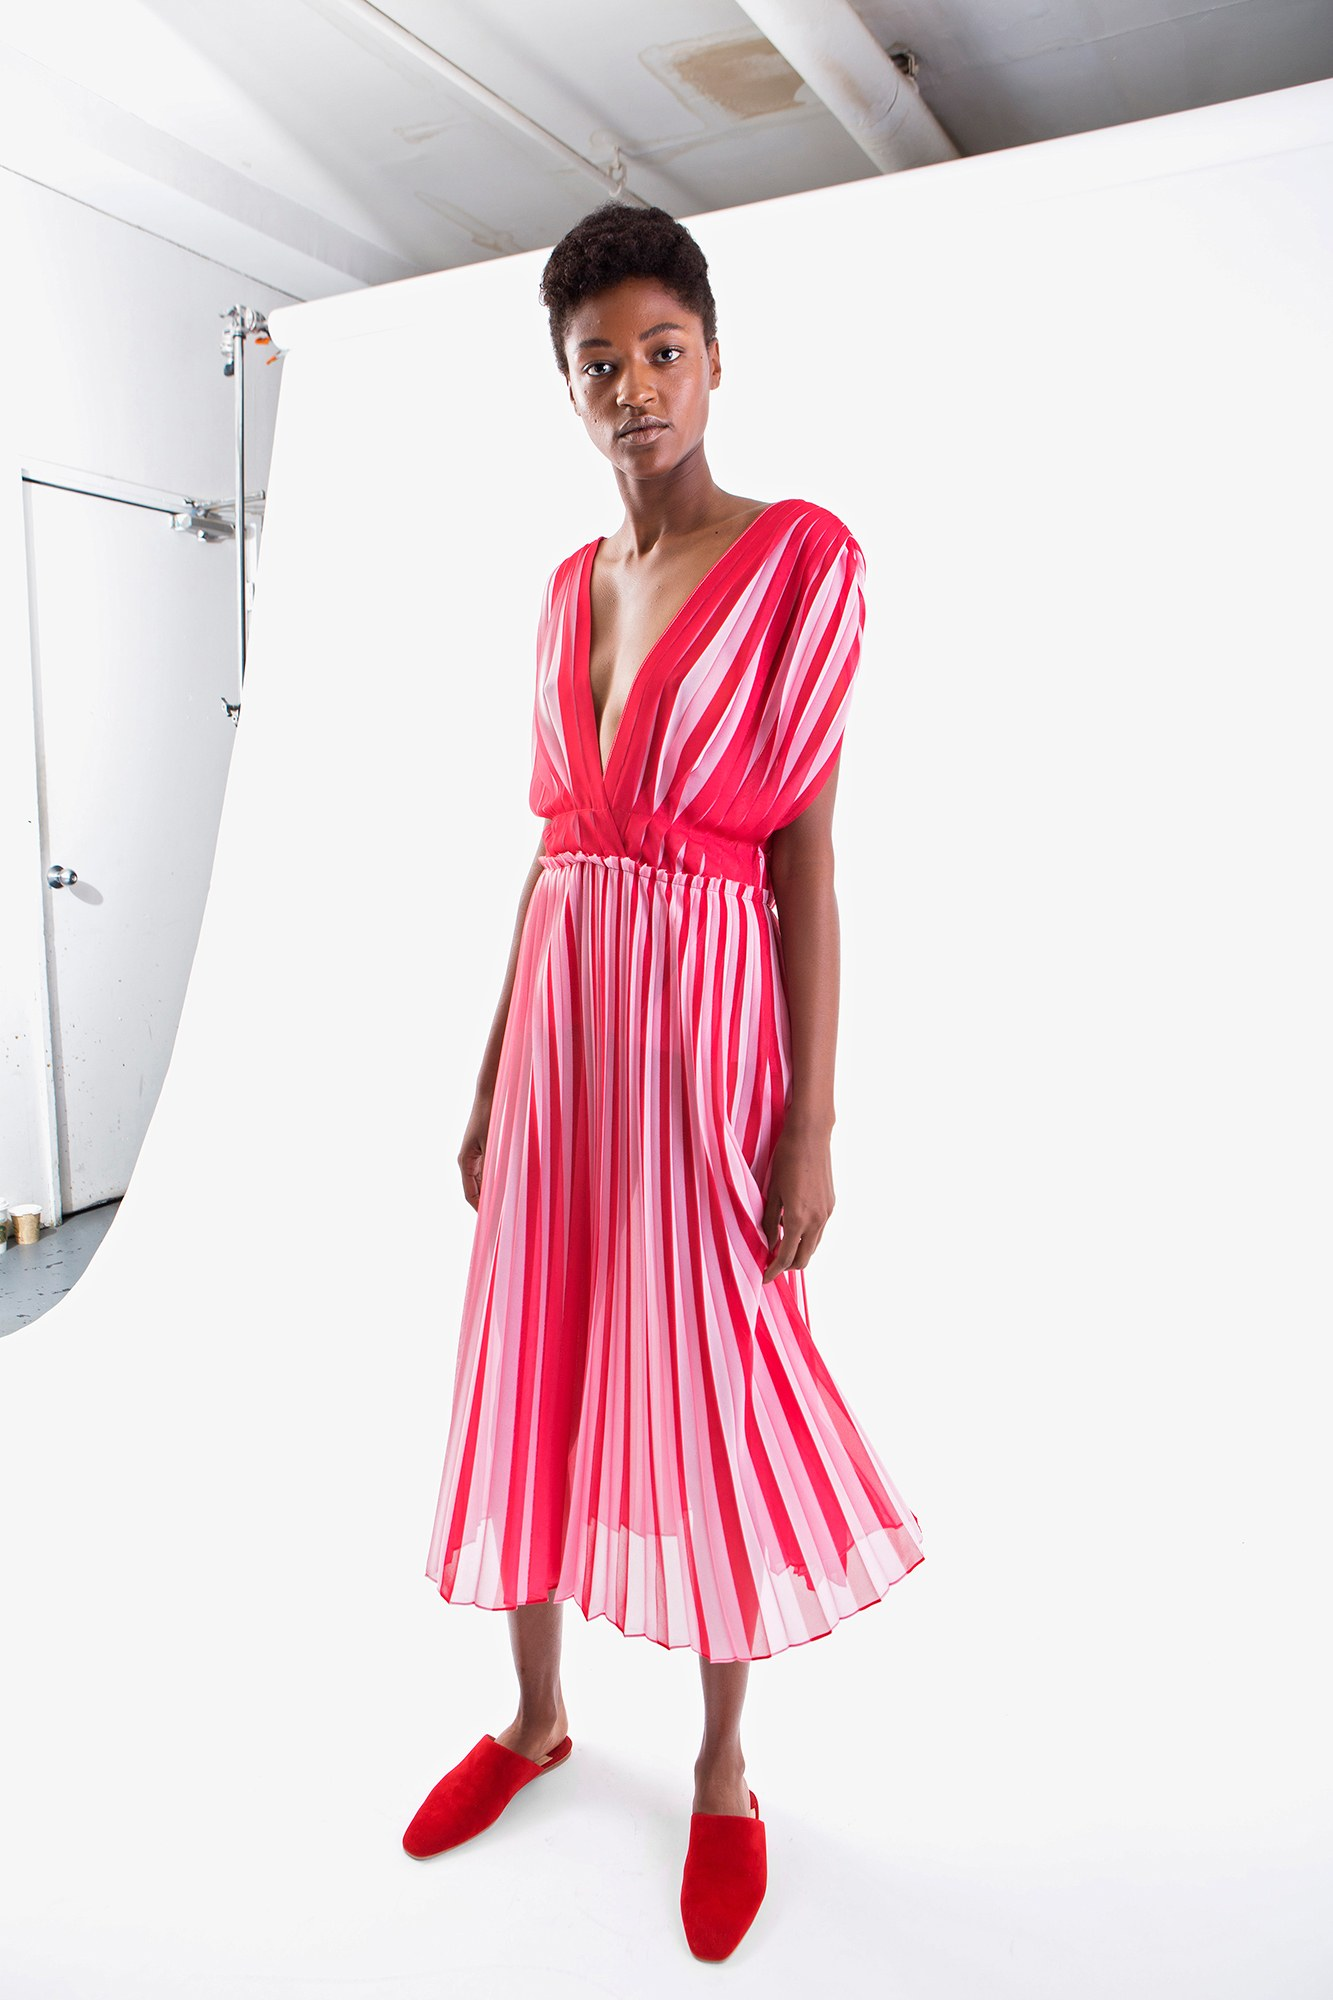 26-tome-spring-2018-ready-to-wear.jpg